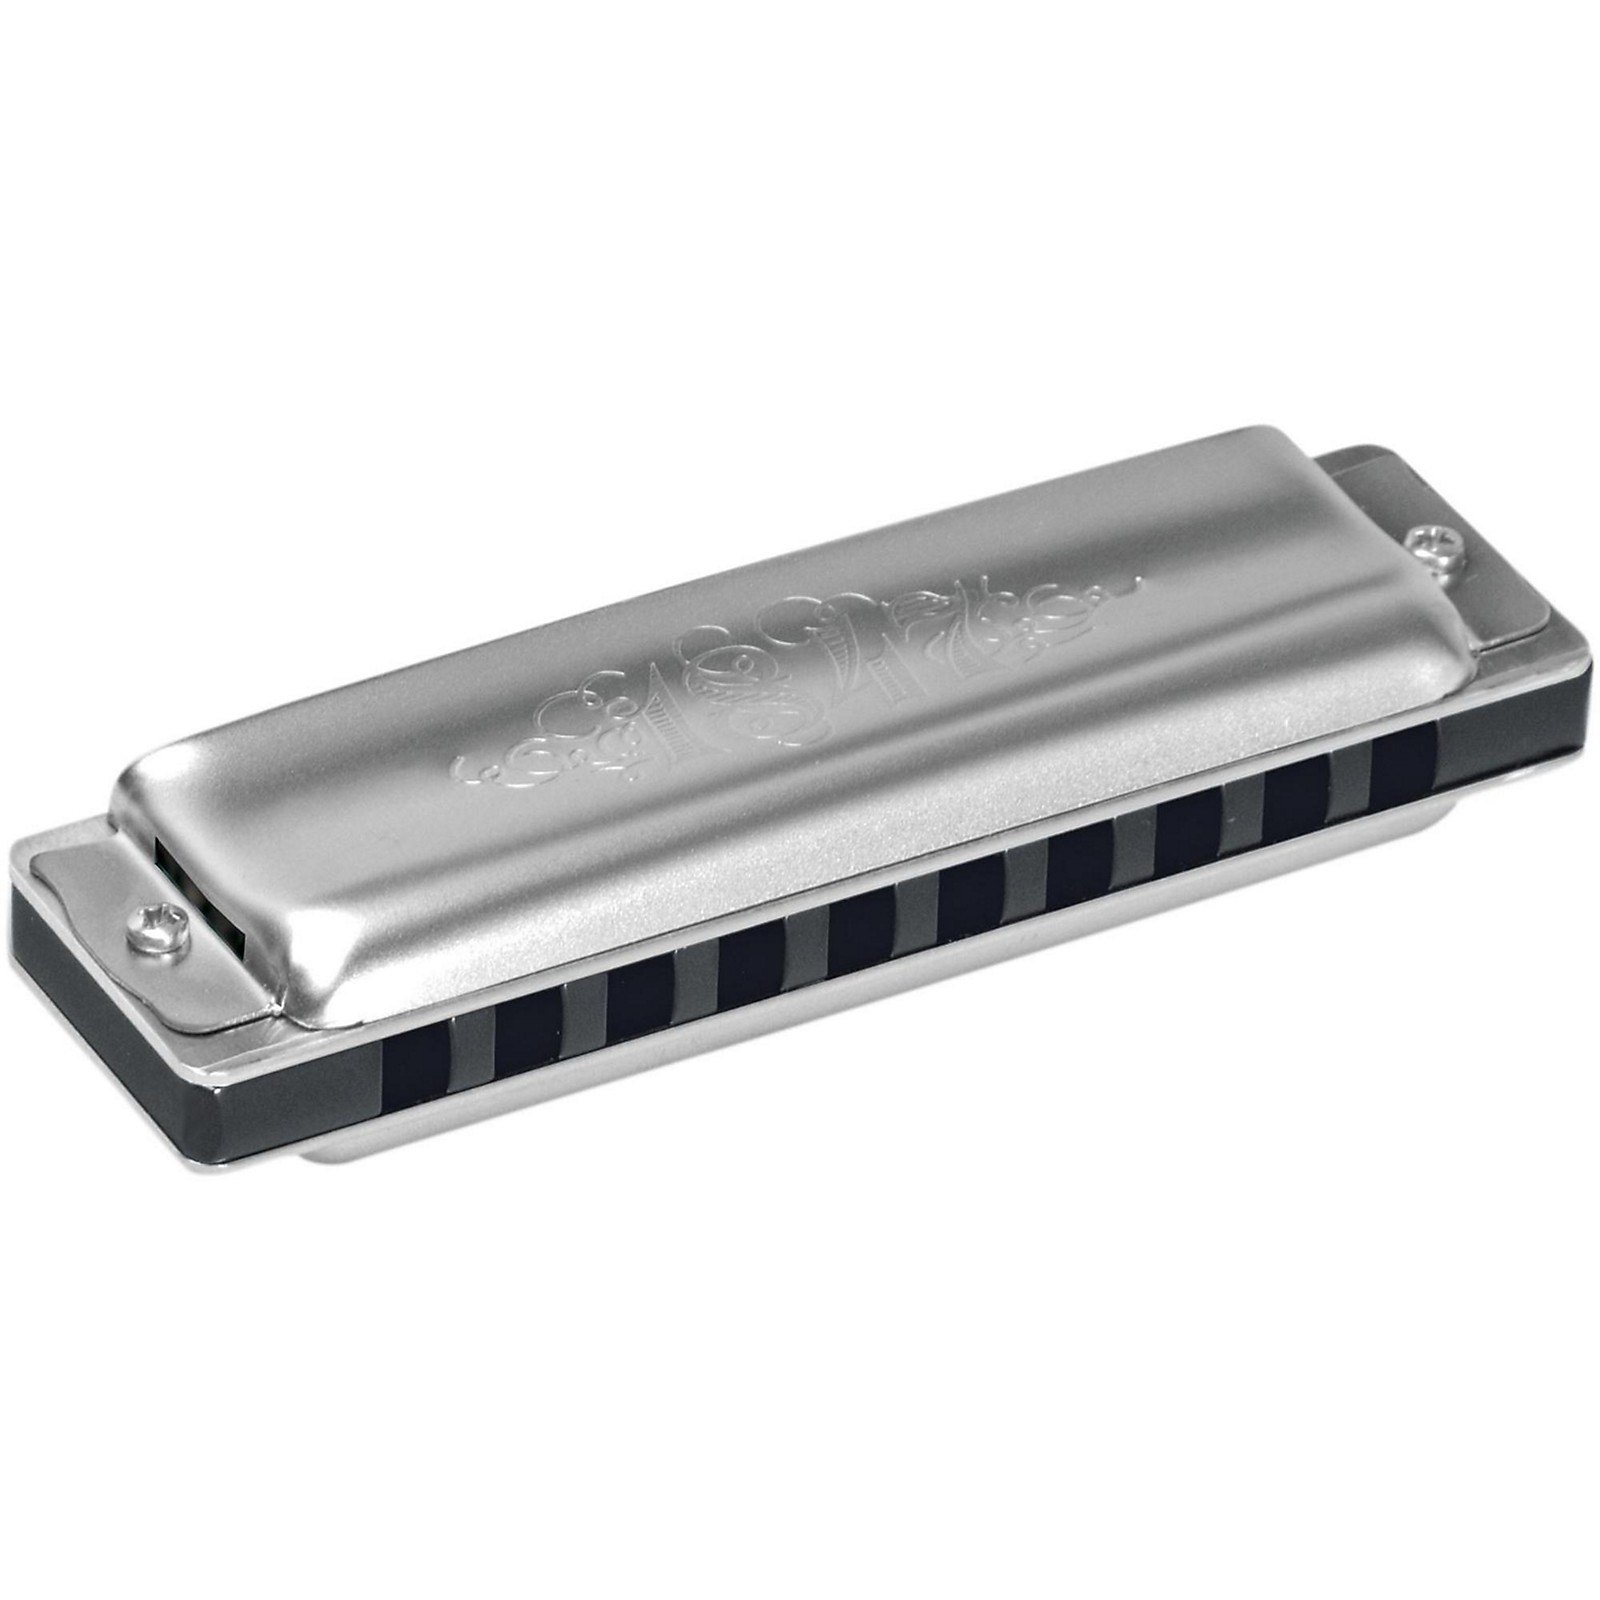 SEYDEL Blues 1847 Harmonicas NOBLE with Hardcover Case (Set of 5)